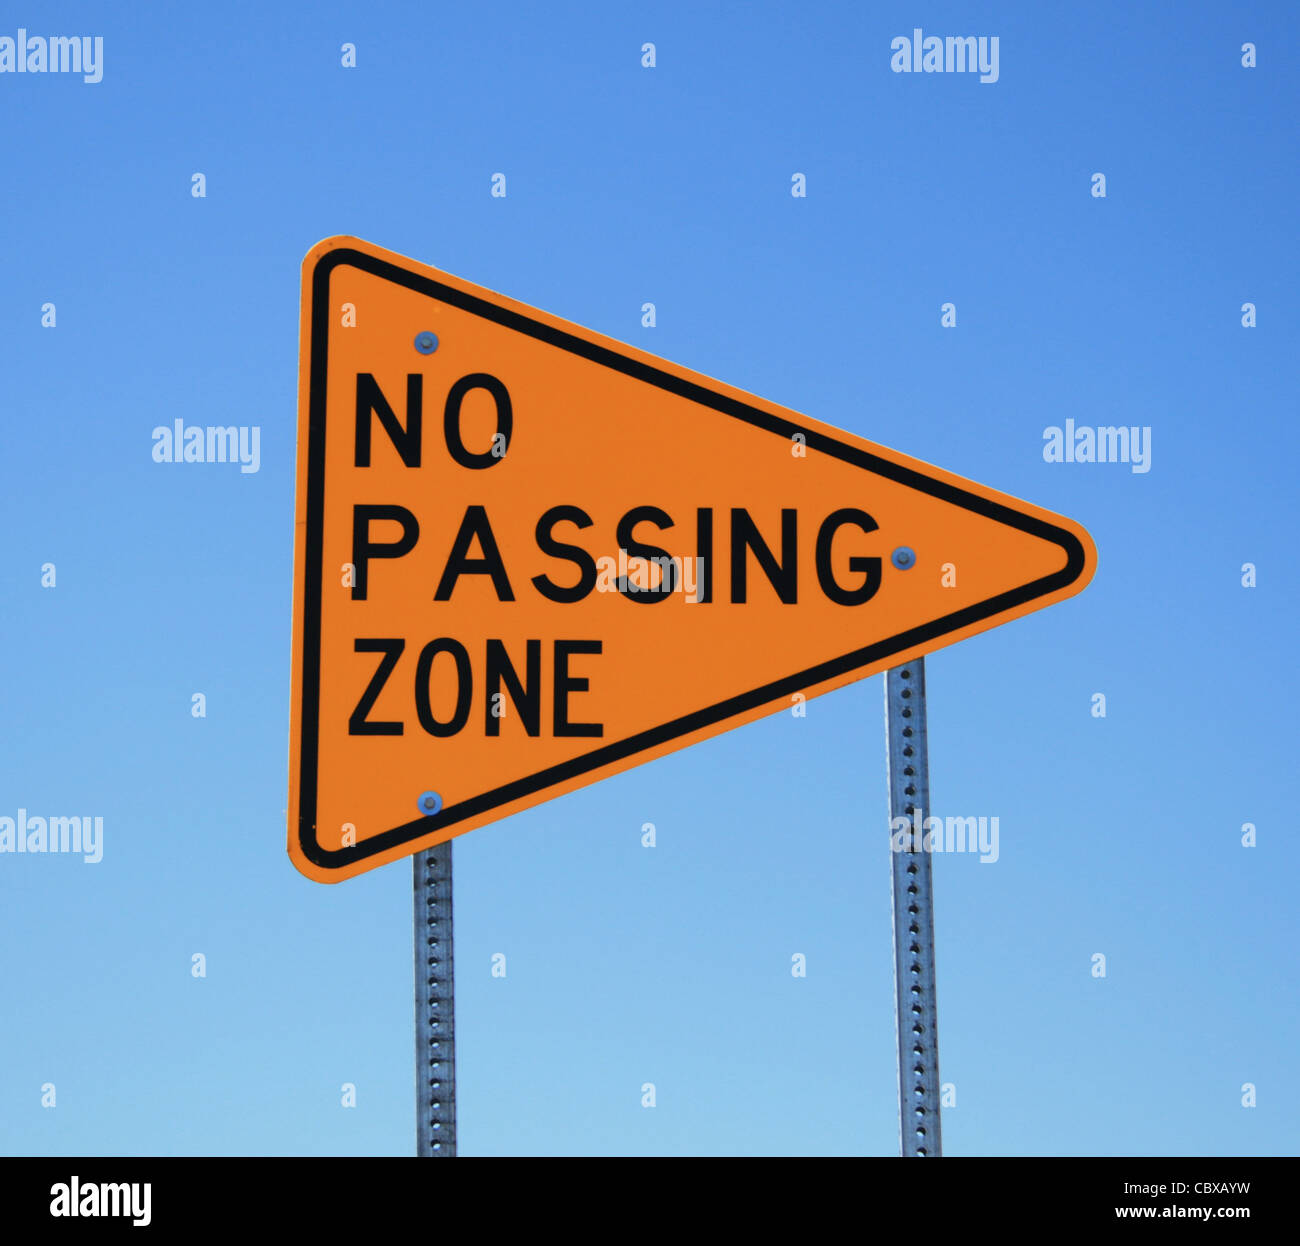 no passing zone road sign in yellow and black on blue sky background - Stock Image